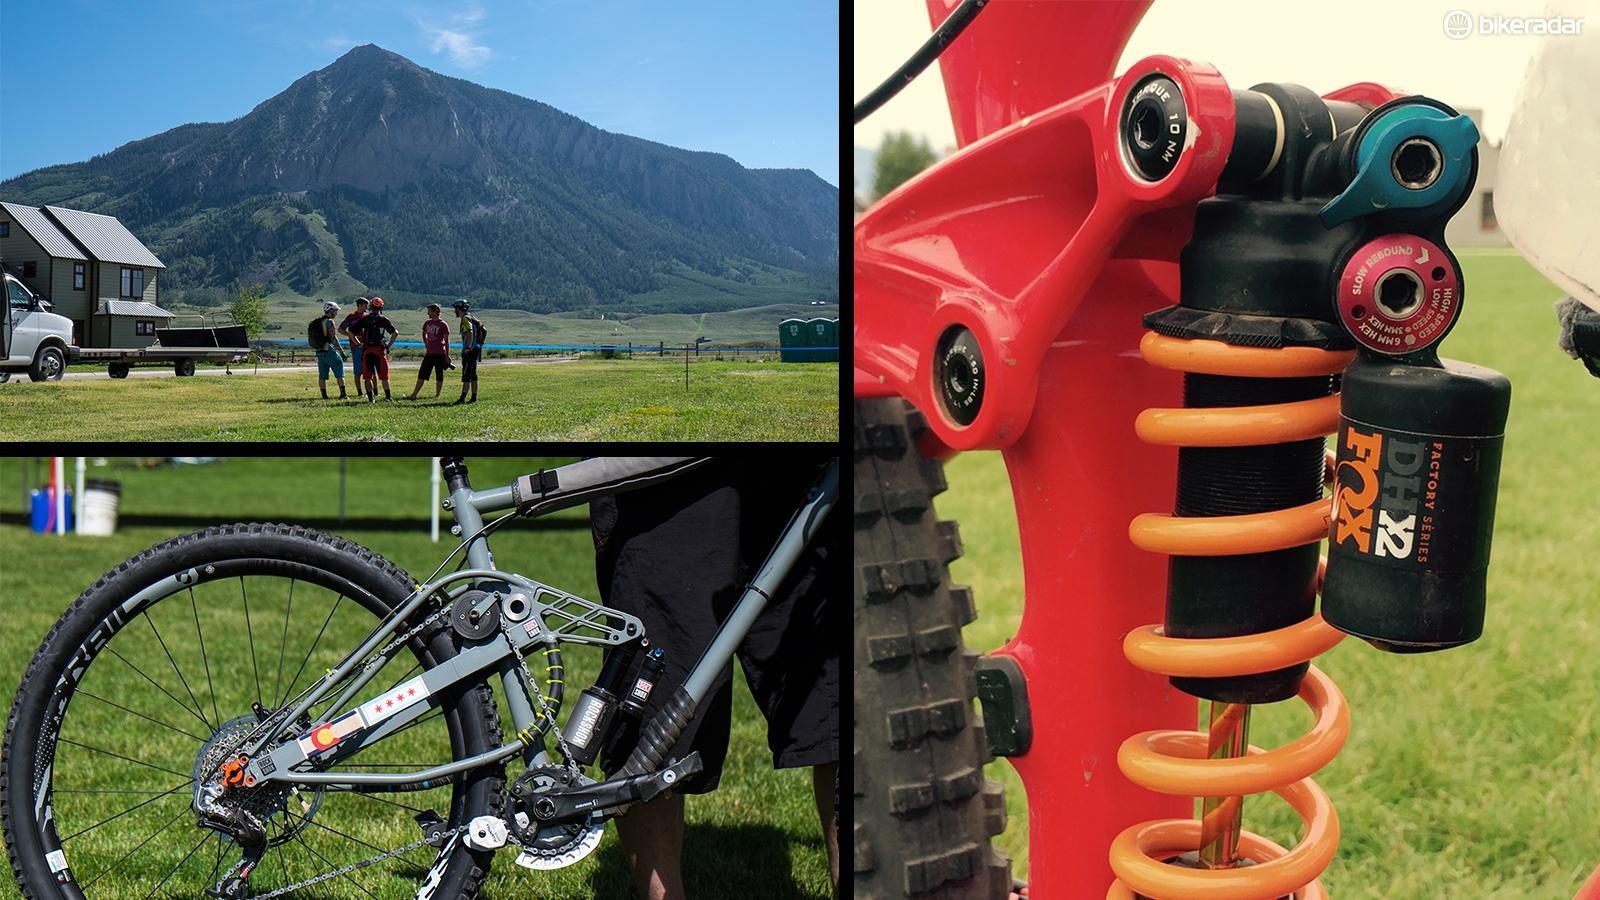 There was no shortage of new and modified equipment on display at the Enduro World Series stop in Crested Butte, Colorado